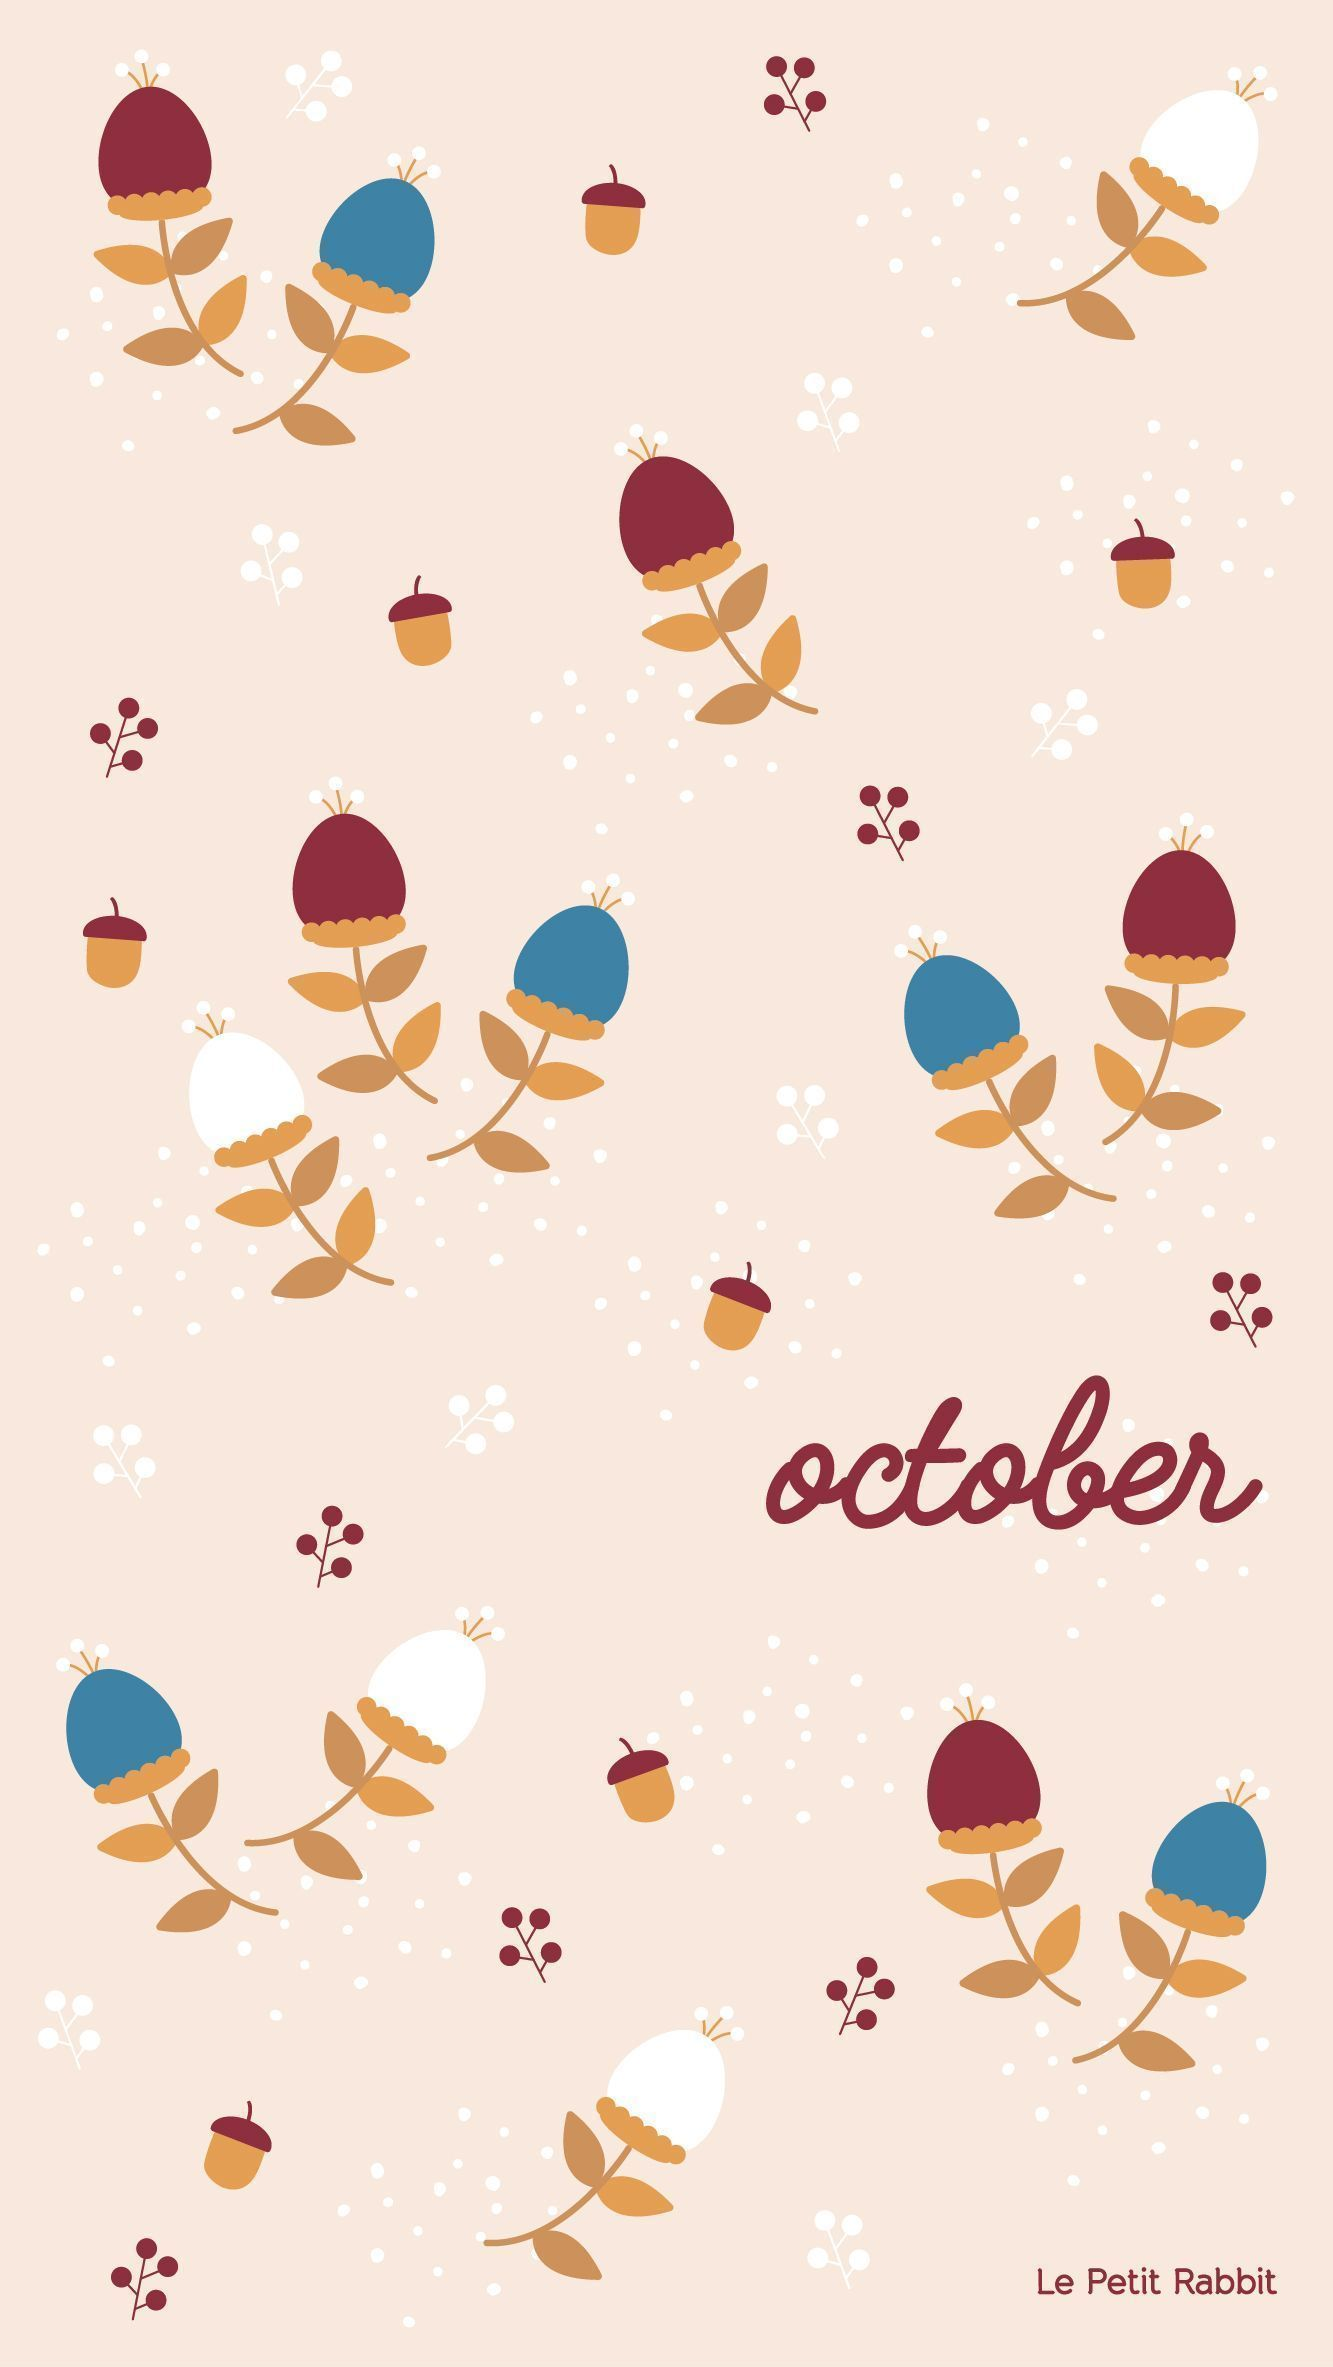 October wallpaper iPhone #octoberwallpaperiphone October wallpaper iPhone #octoberwallpaperiphone October wallpaper iPhone #octoberwallpaperiphone October wallpaper iPhone #octoberwallpaper October wallpaper iPhone #octoberwallpaperiphone October wallpaper iPhone #octoberwallpaperiphone October wallpaper iPhone #octoberwallpaperiphone October wallpaper iPhone #octoberwallpaperiphone October wallpaper iPhone #octoberwallpaperiphone October wallpaper iPhone #octoberwallpaperiphone October wallpape #octoberwallpaperiphone